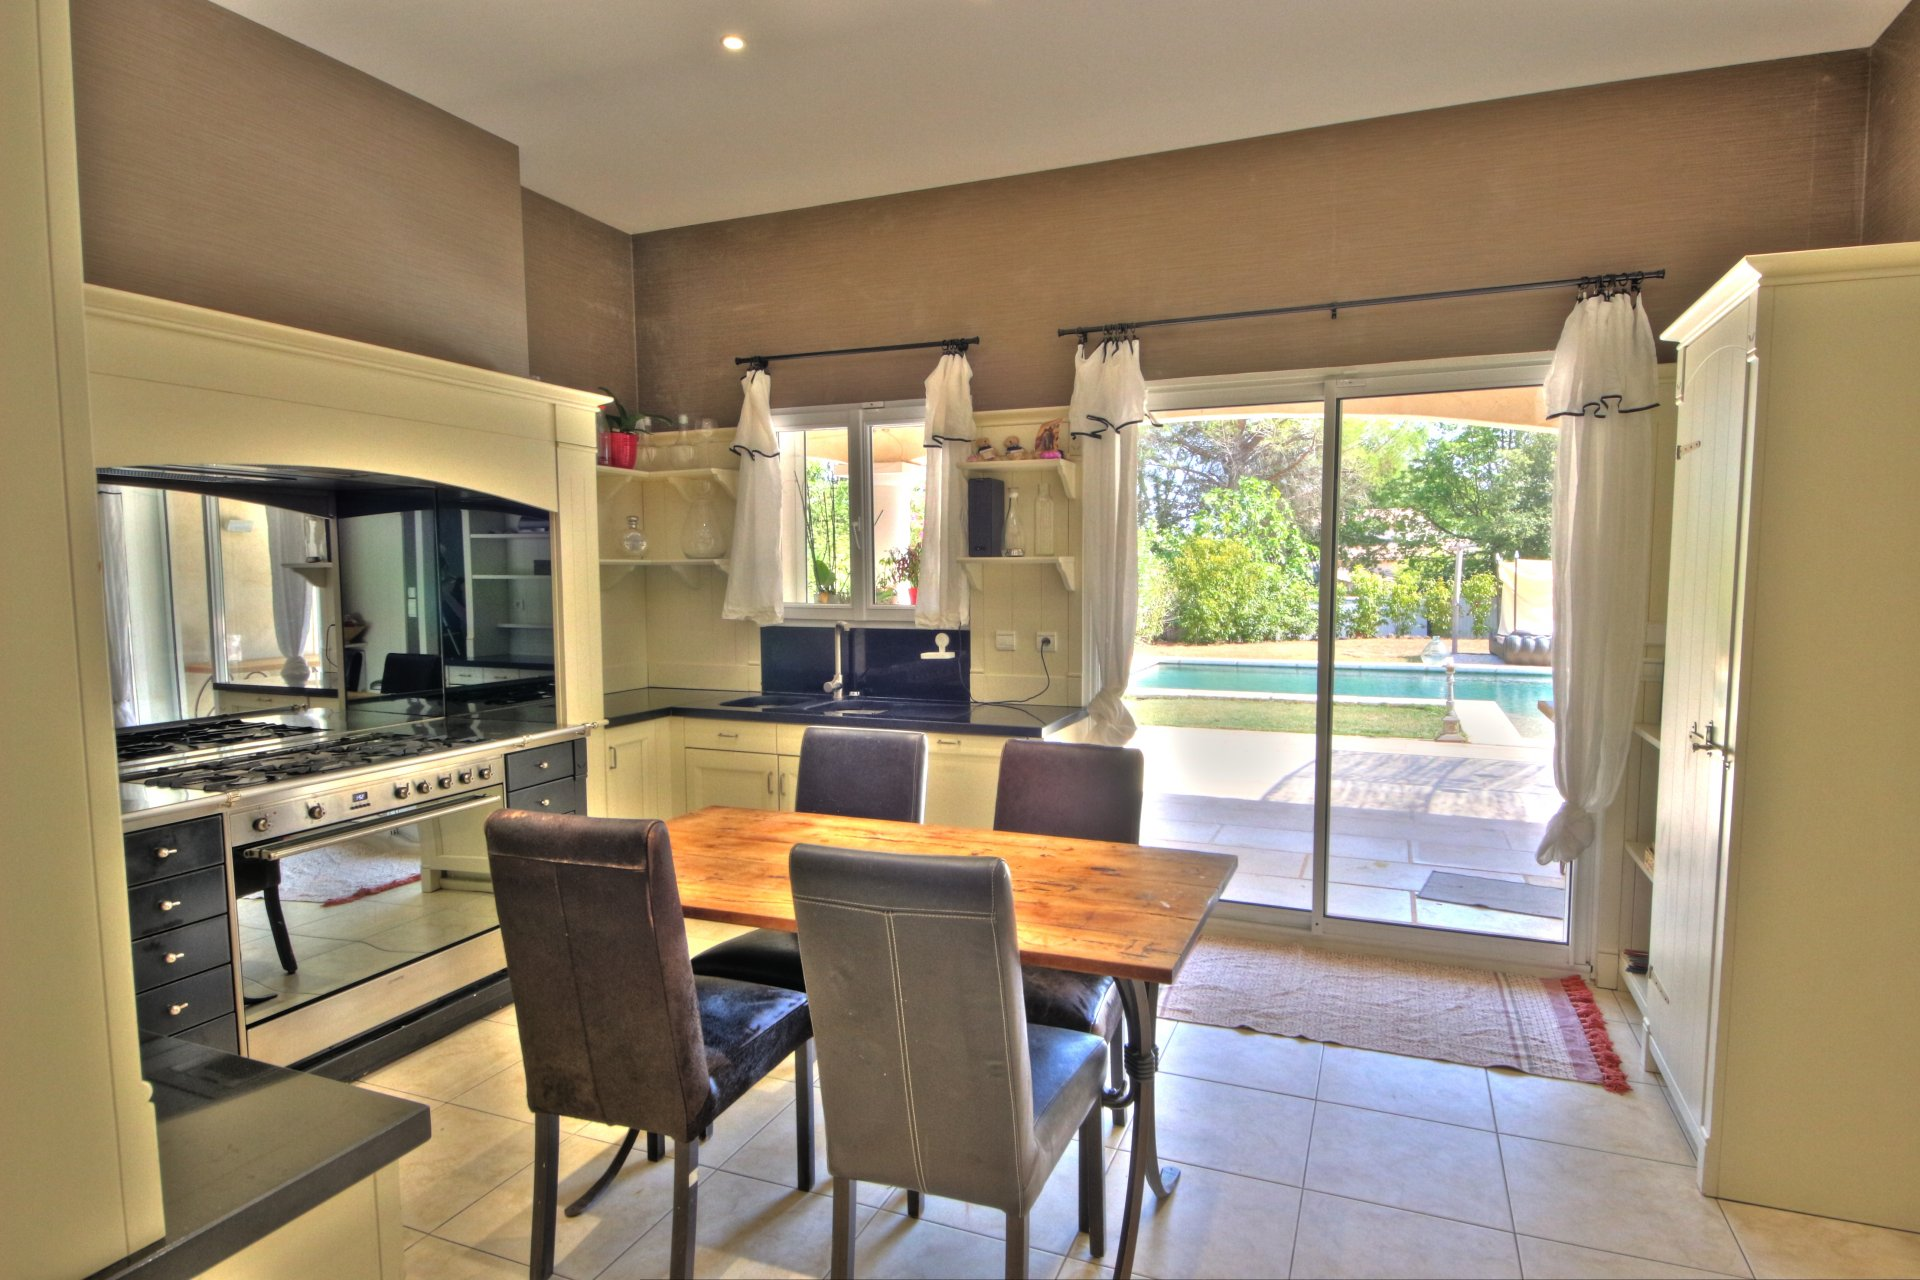 Bright and spacious kitchen, with plenty of storage, quality materials, access to the terrace